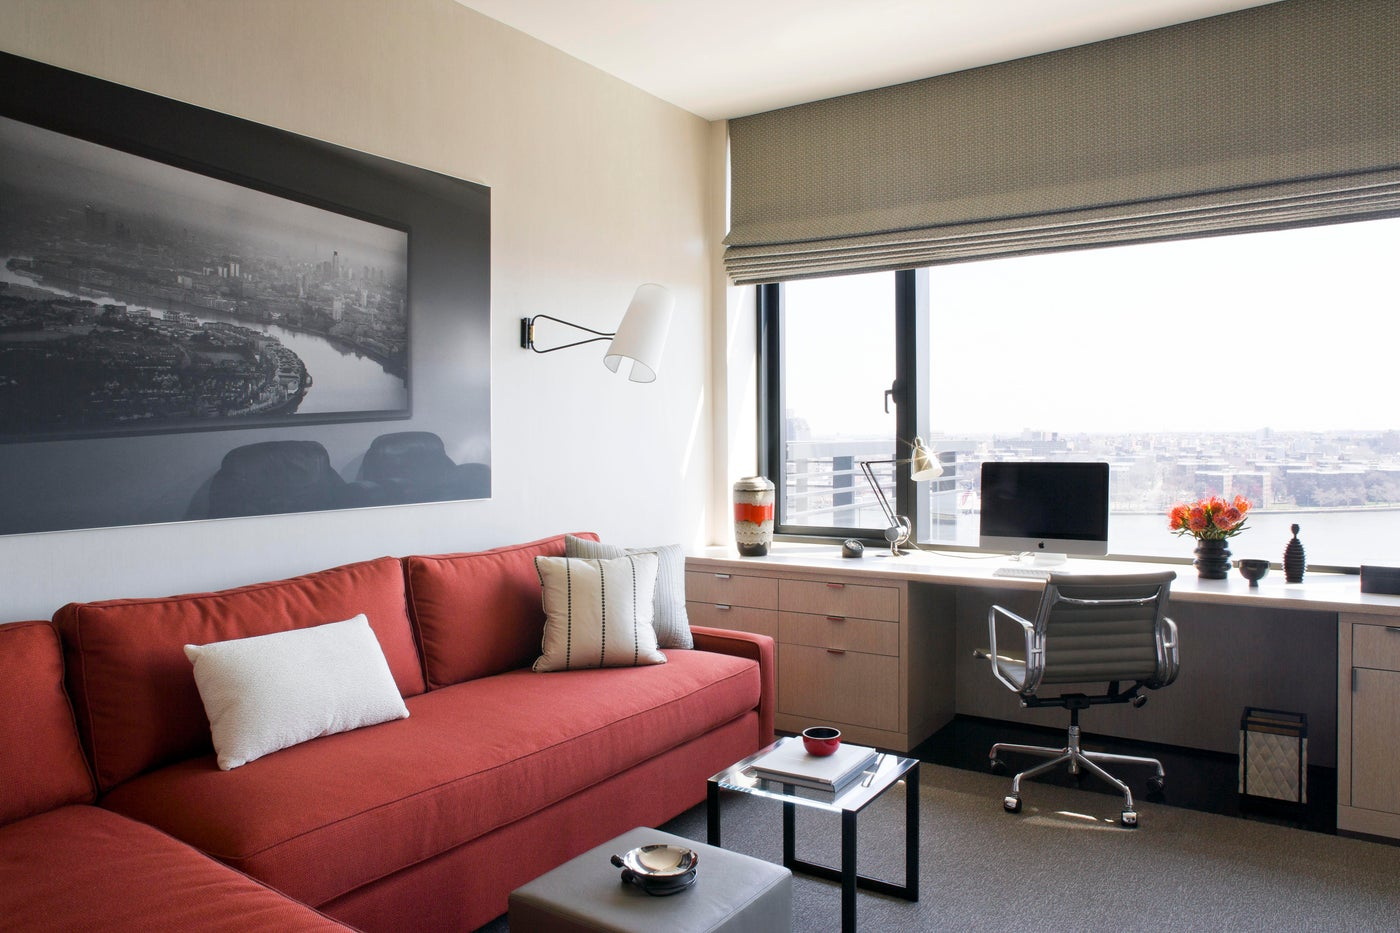 Study in NYC apartment, built in desk, black and white artwork, orange accents